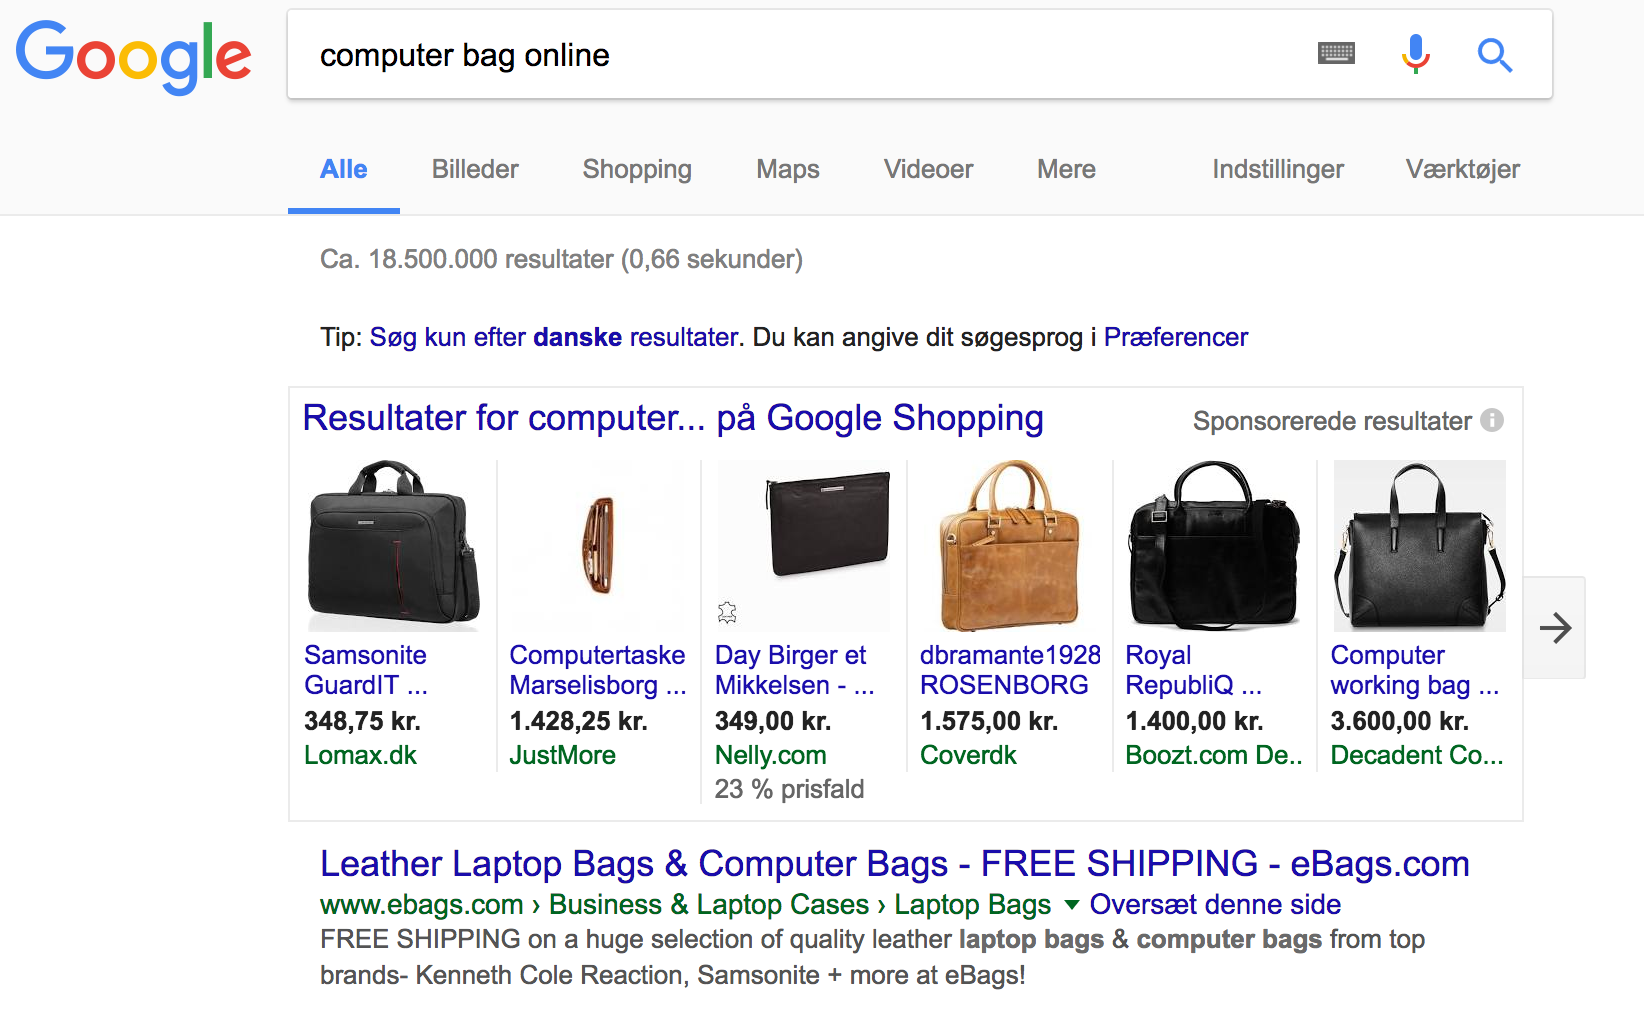 Google Shopping: Computer bags online-resultater